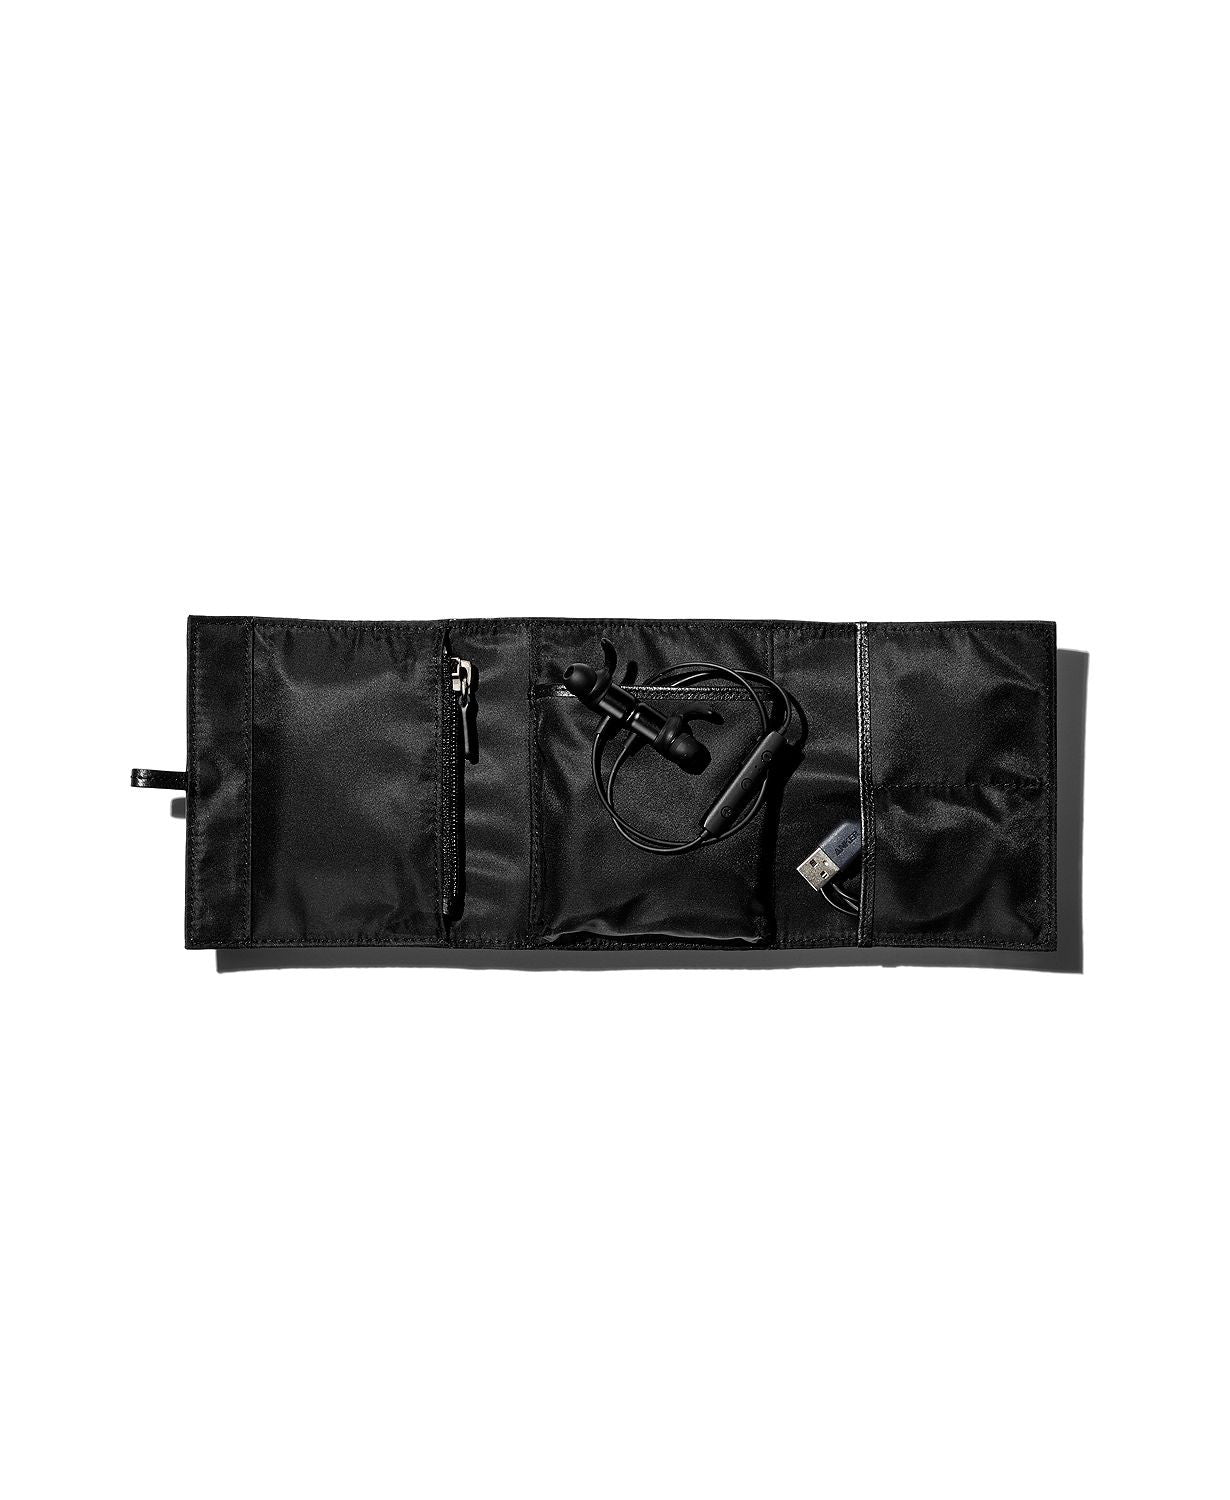 Lambertson Truex Pebbled Leather Soft Utility Roll Black